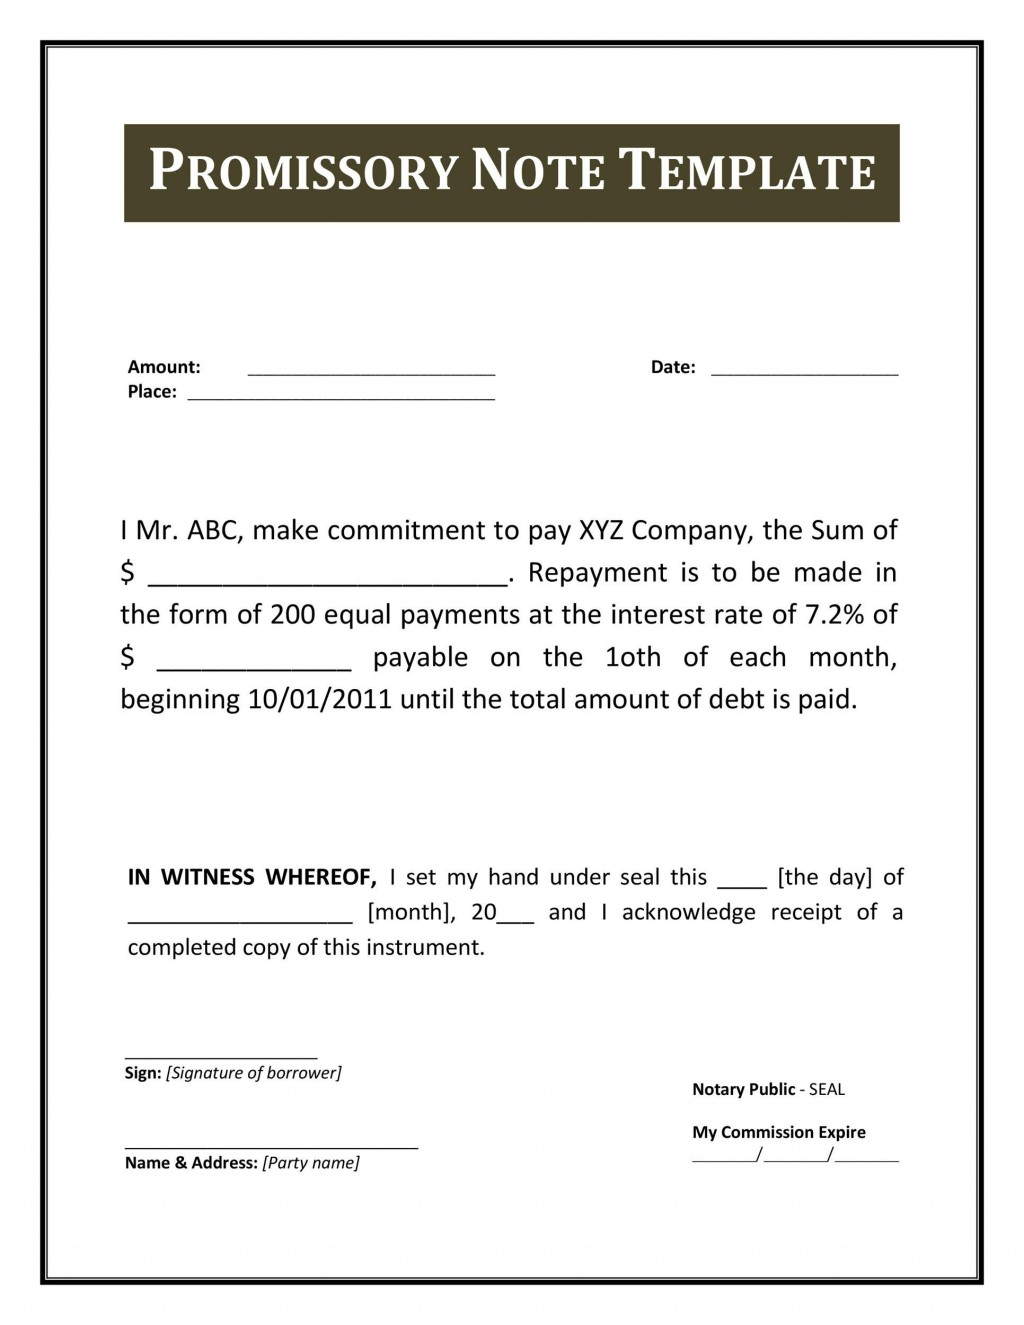 005 Marvelou Loan Promissory Note Template Highest Quality  Ppp Form Personal Format StudentLarge